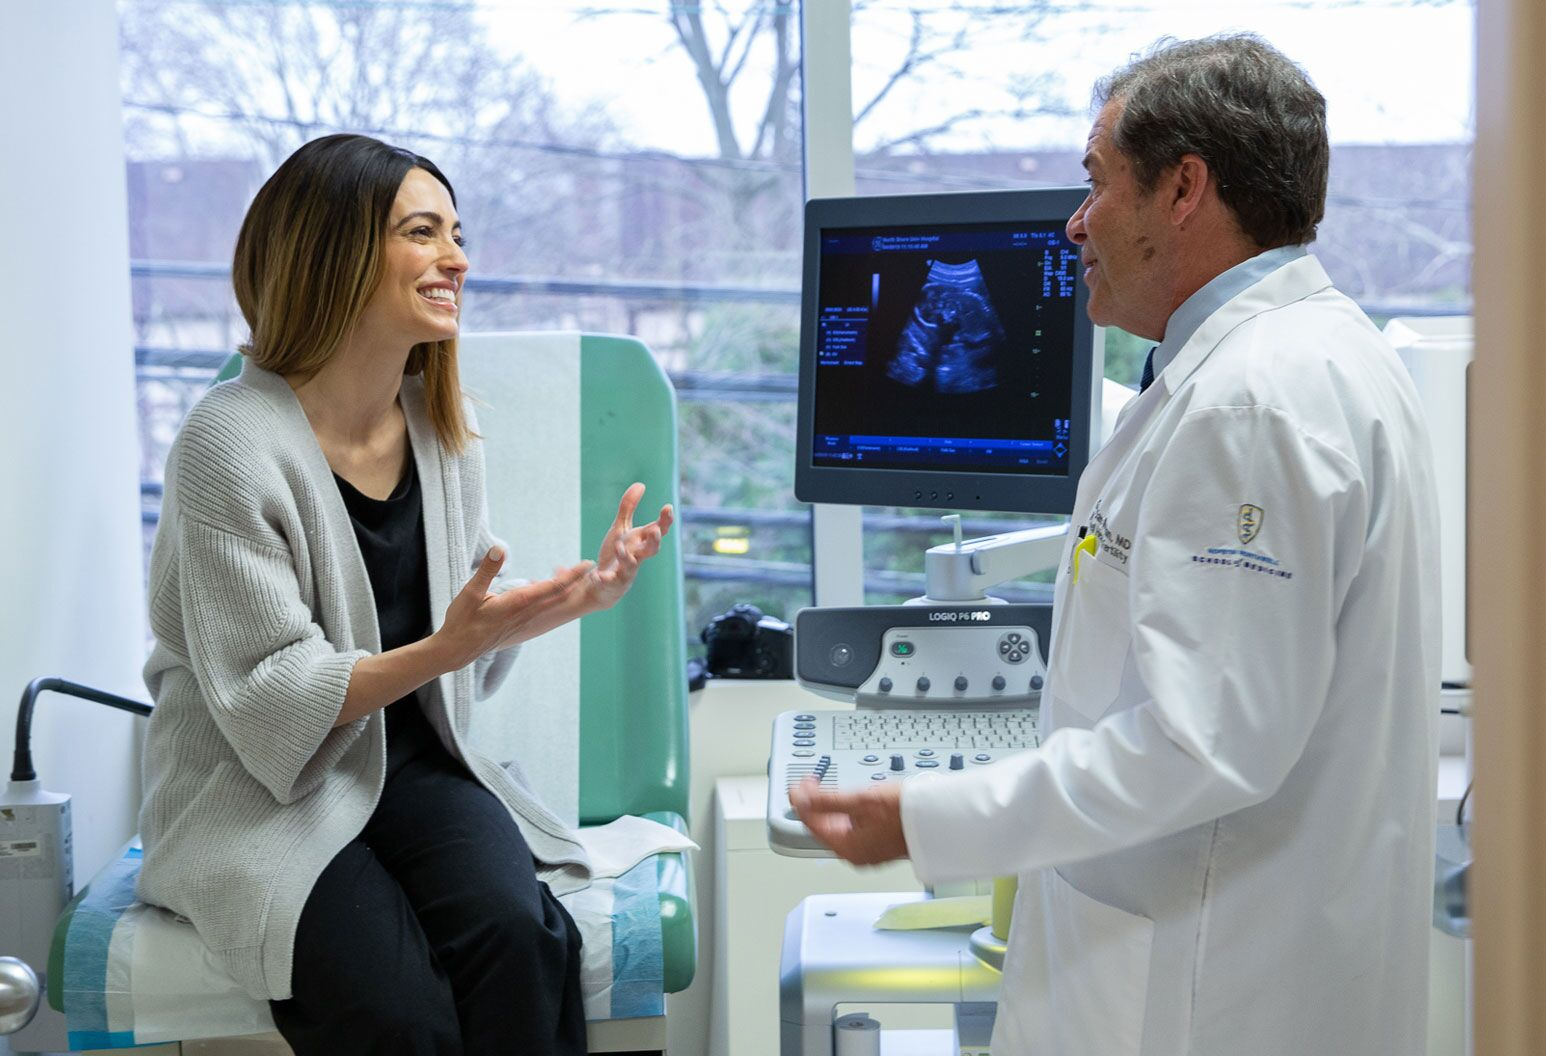 Physician and patient looking at a sonogram